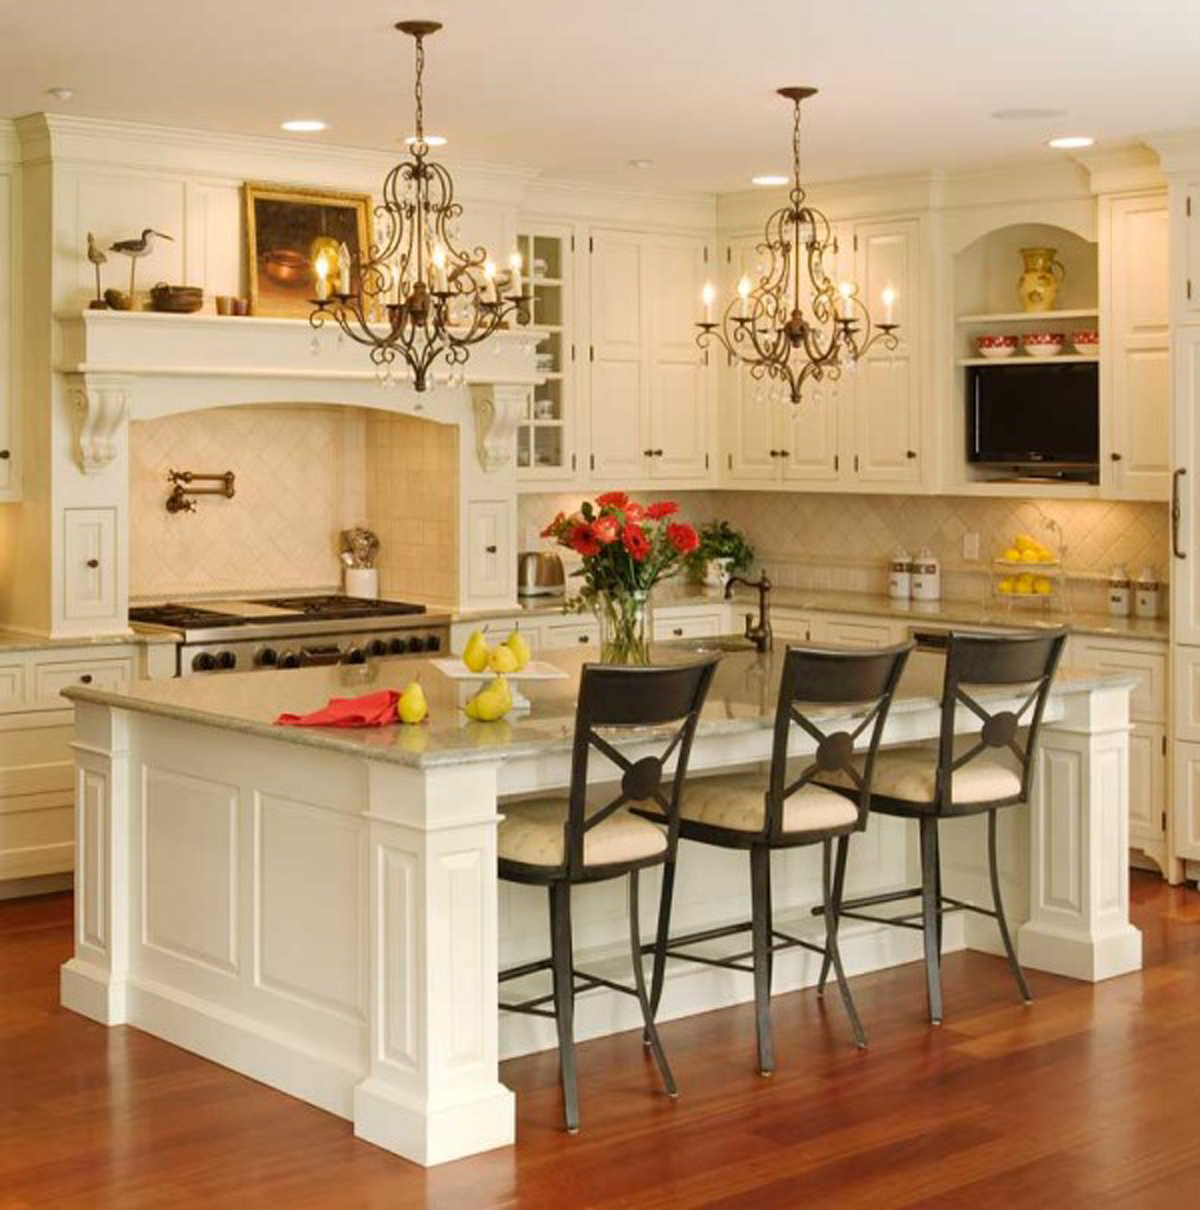 White island kitchen backsplash ideas for Kitchen island designs